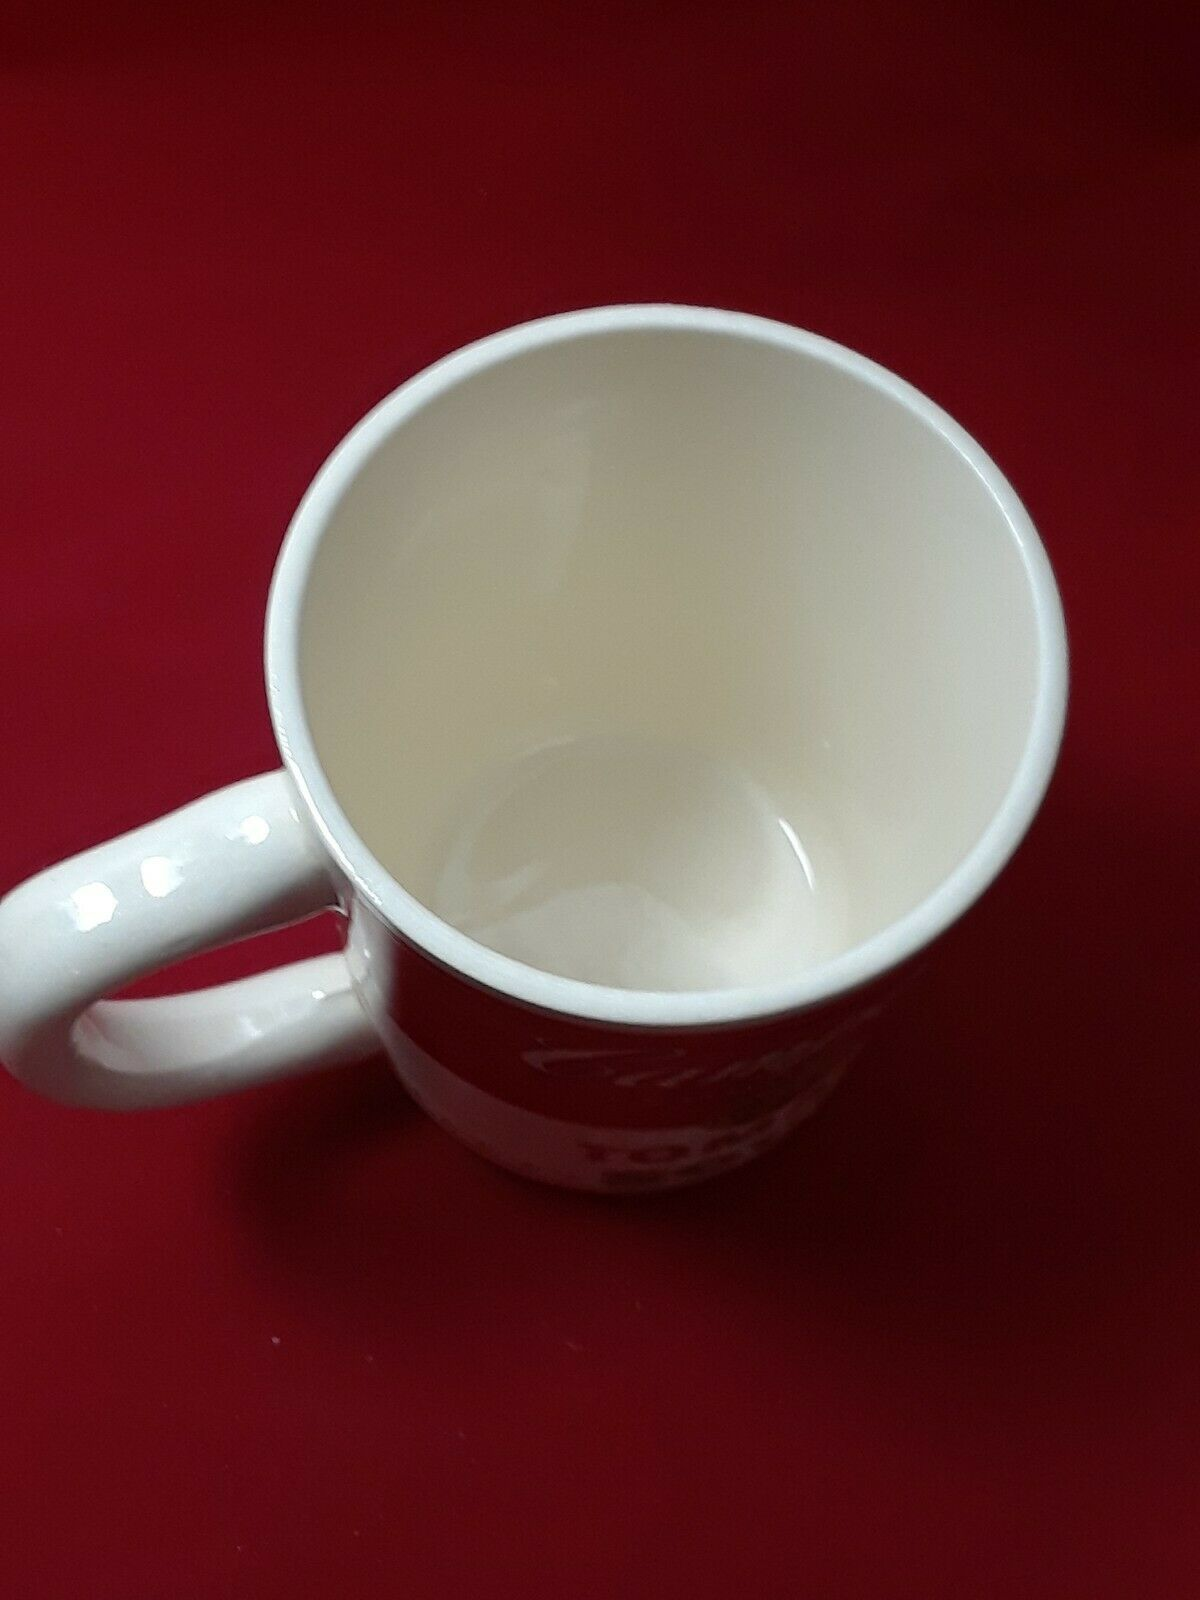 Collectible Campbell's Tomato Soup Mug Cup 8 oz in The Original Styrofoam Mailer image 8